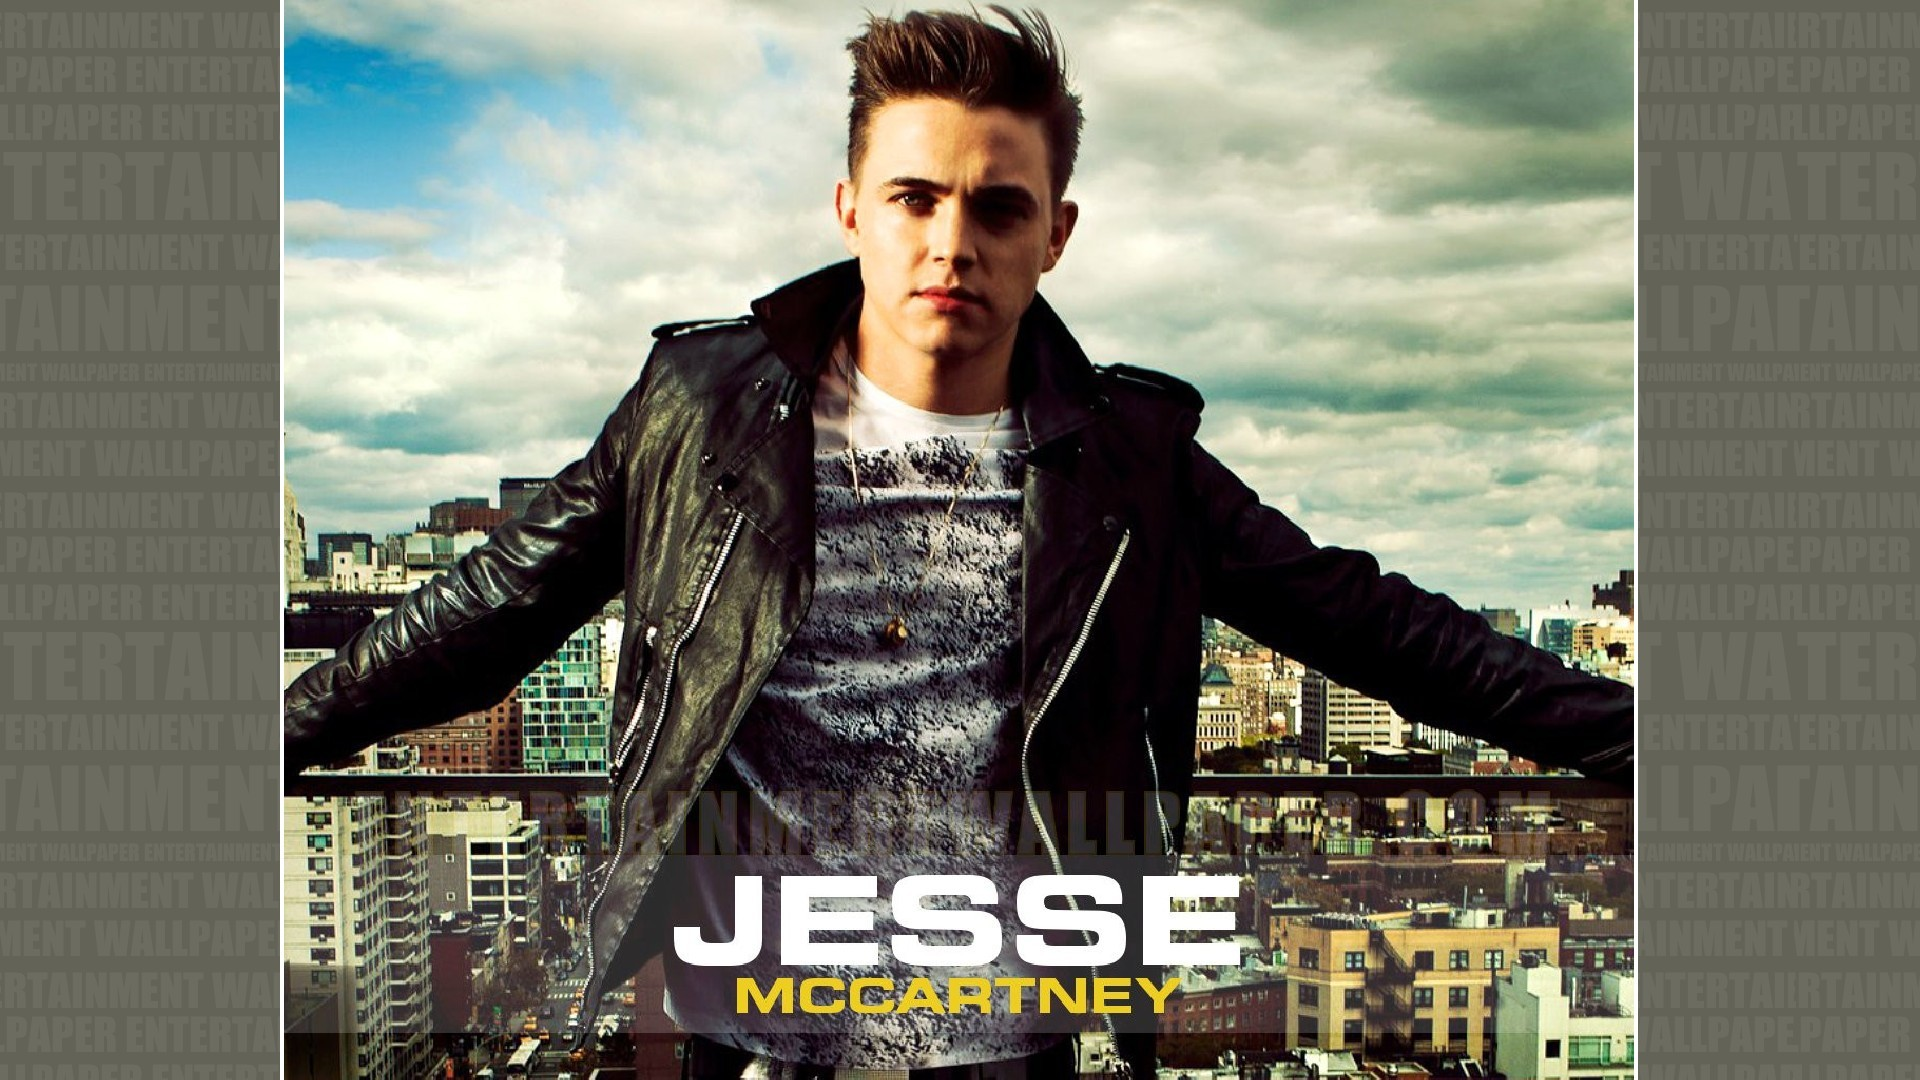 1920x1080 Jesse McCartney Wallpaper - Original size, download now.